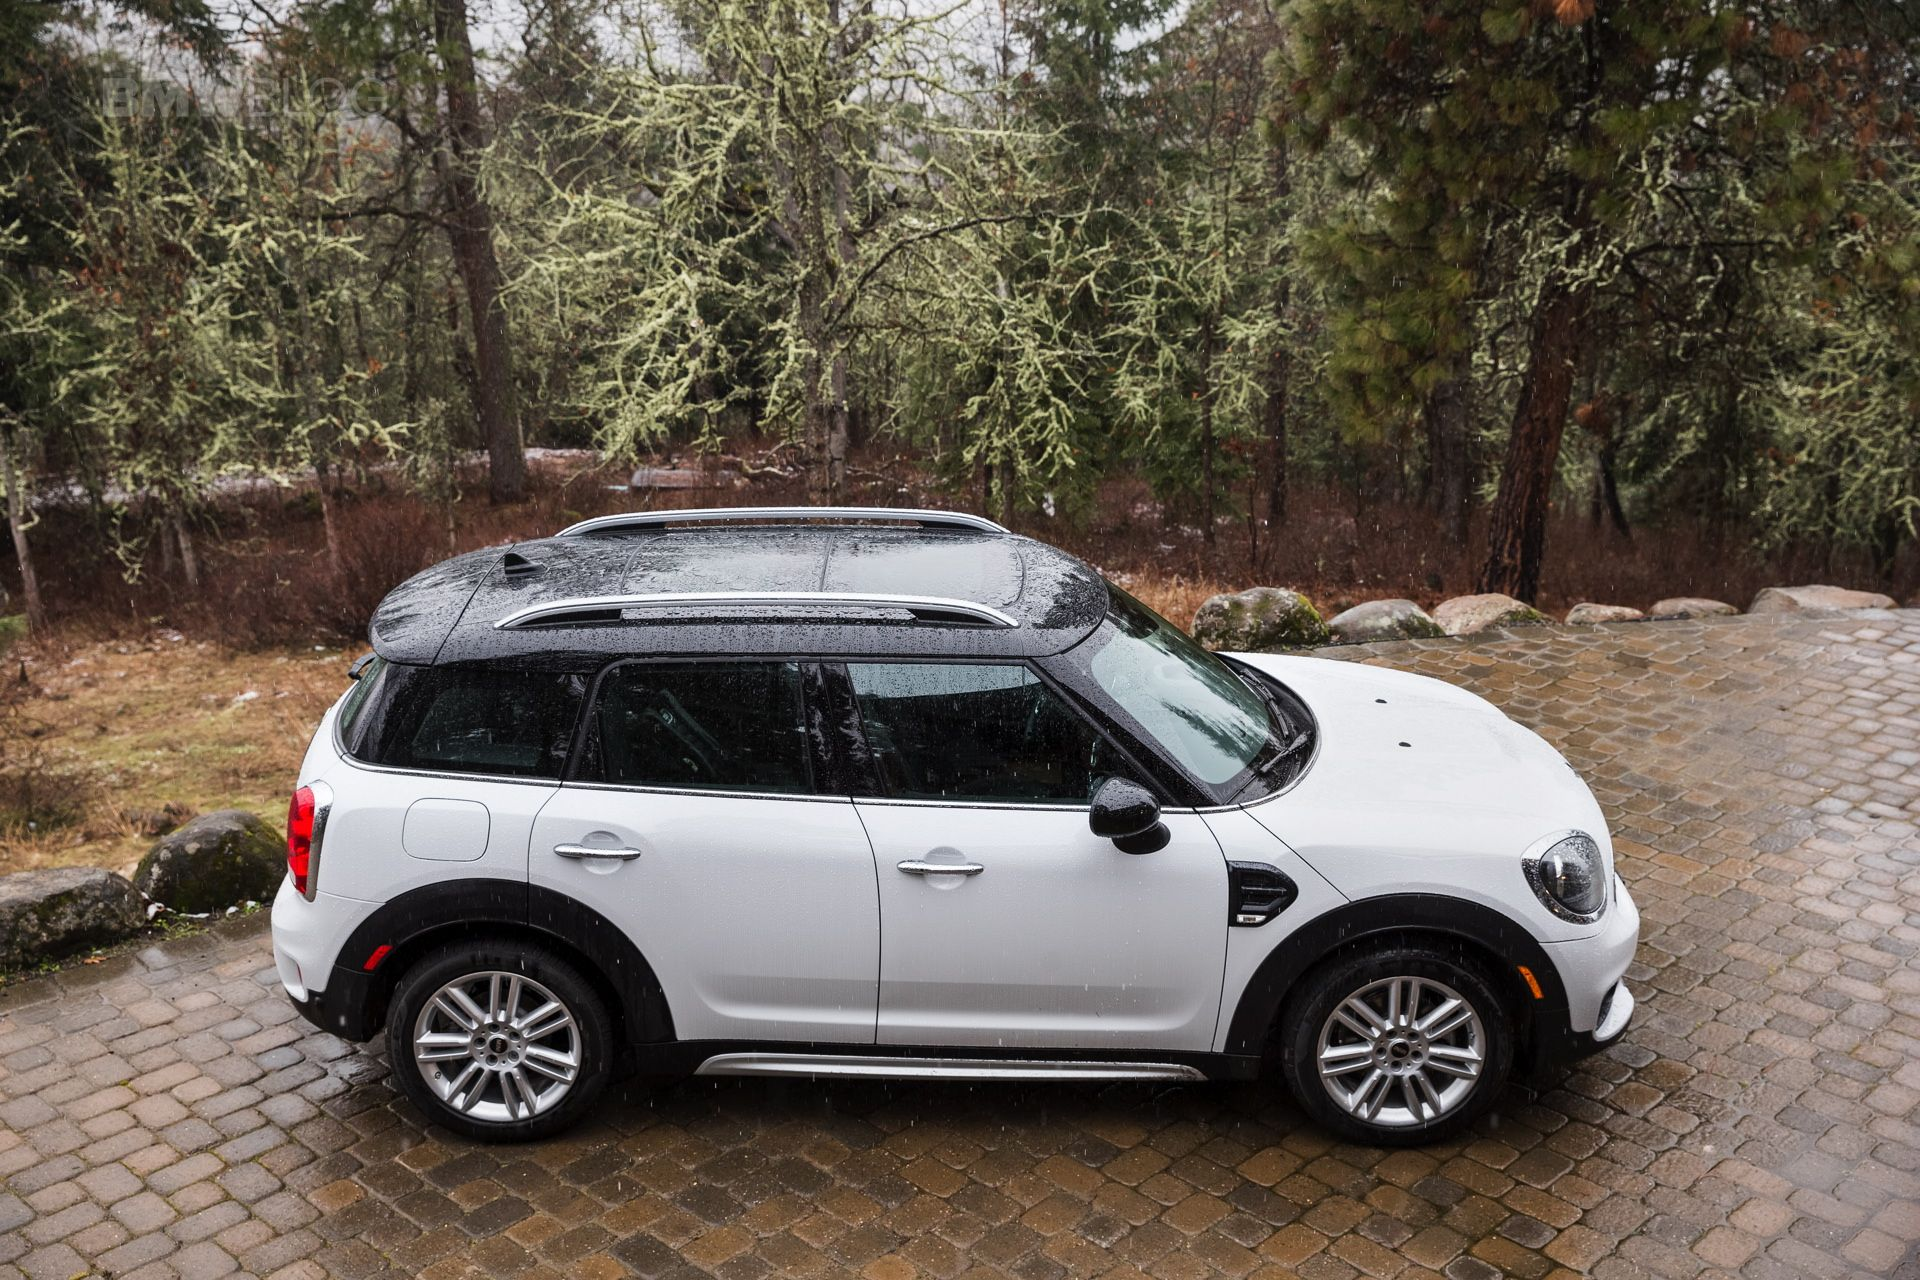 Car And Driver Tests Mini Cooper Countryman 1 5t Manual Http Www Bmwblog 2017 06 21